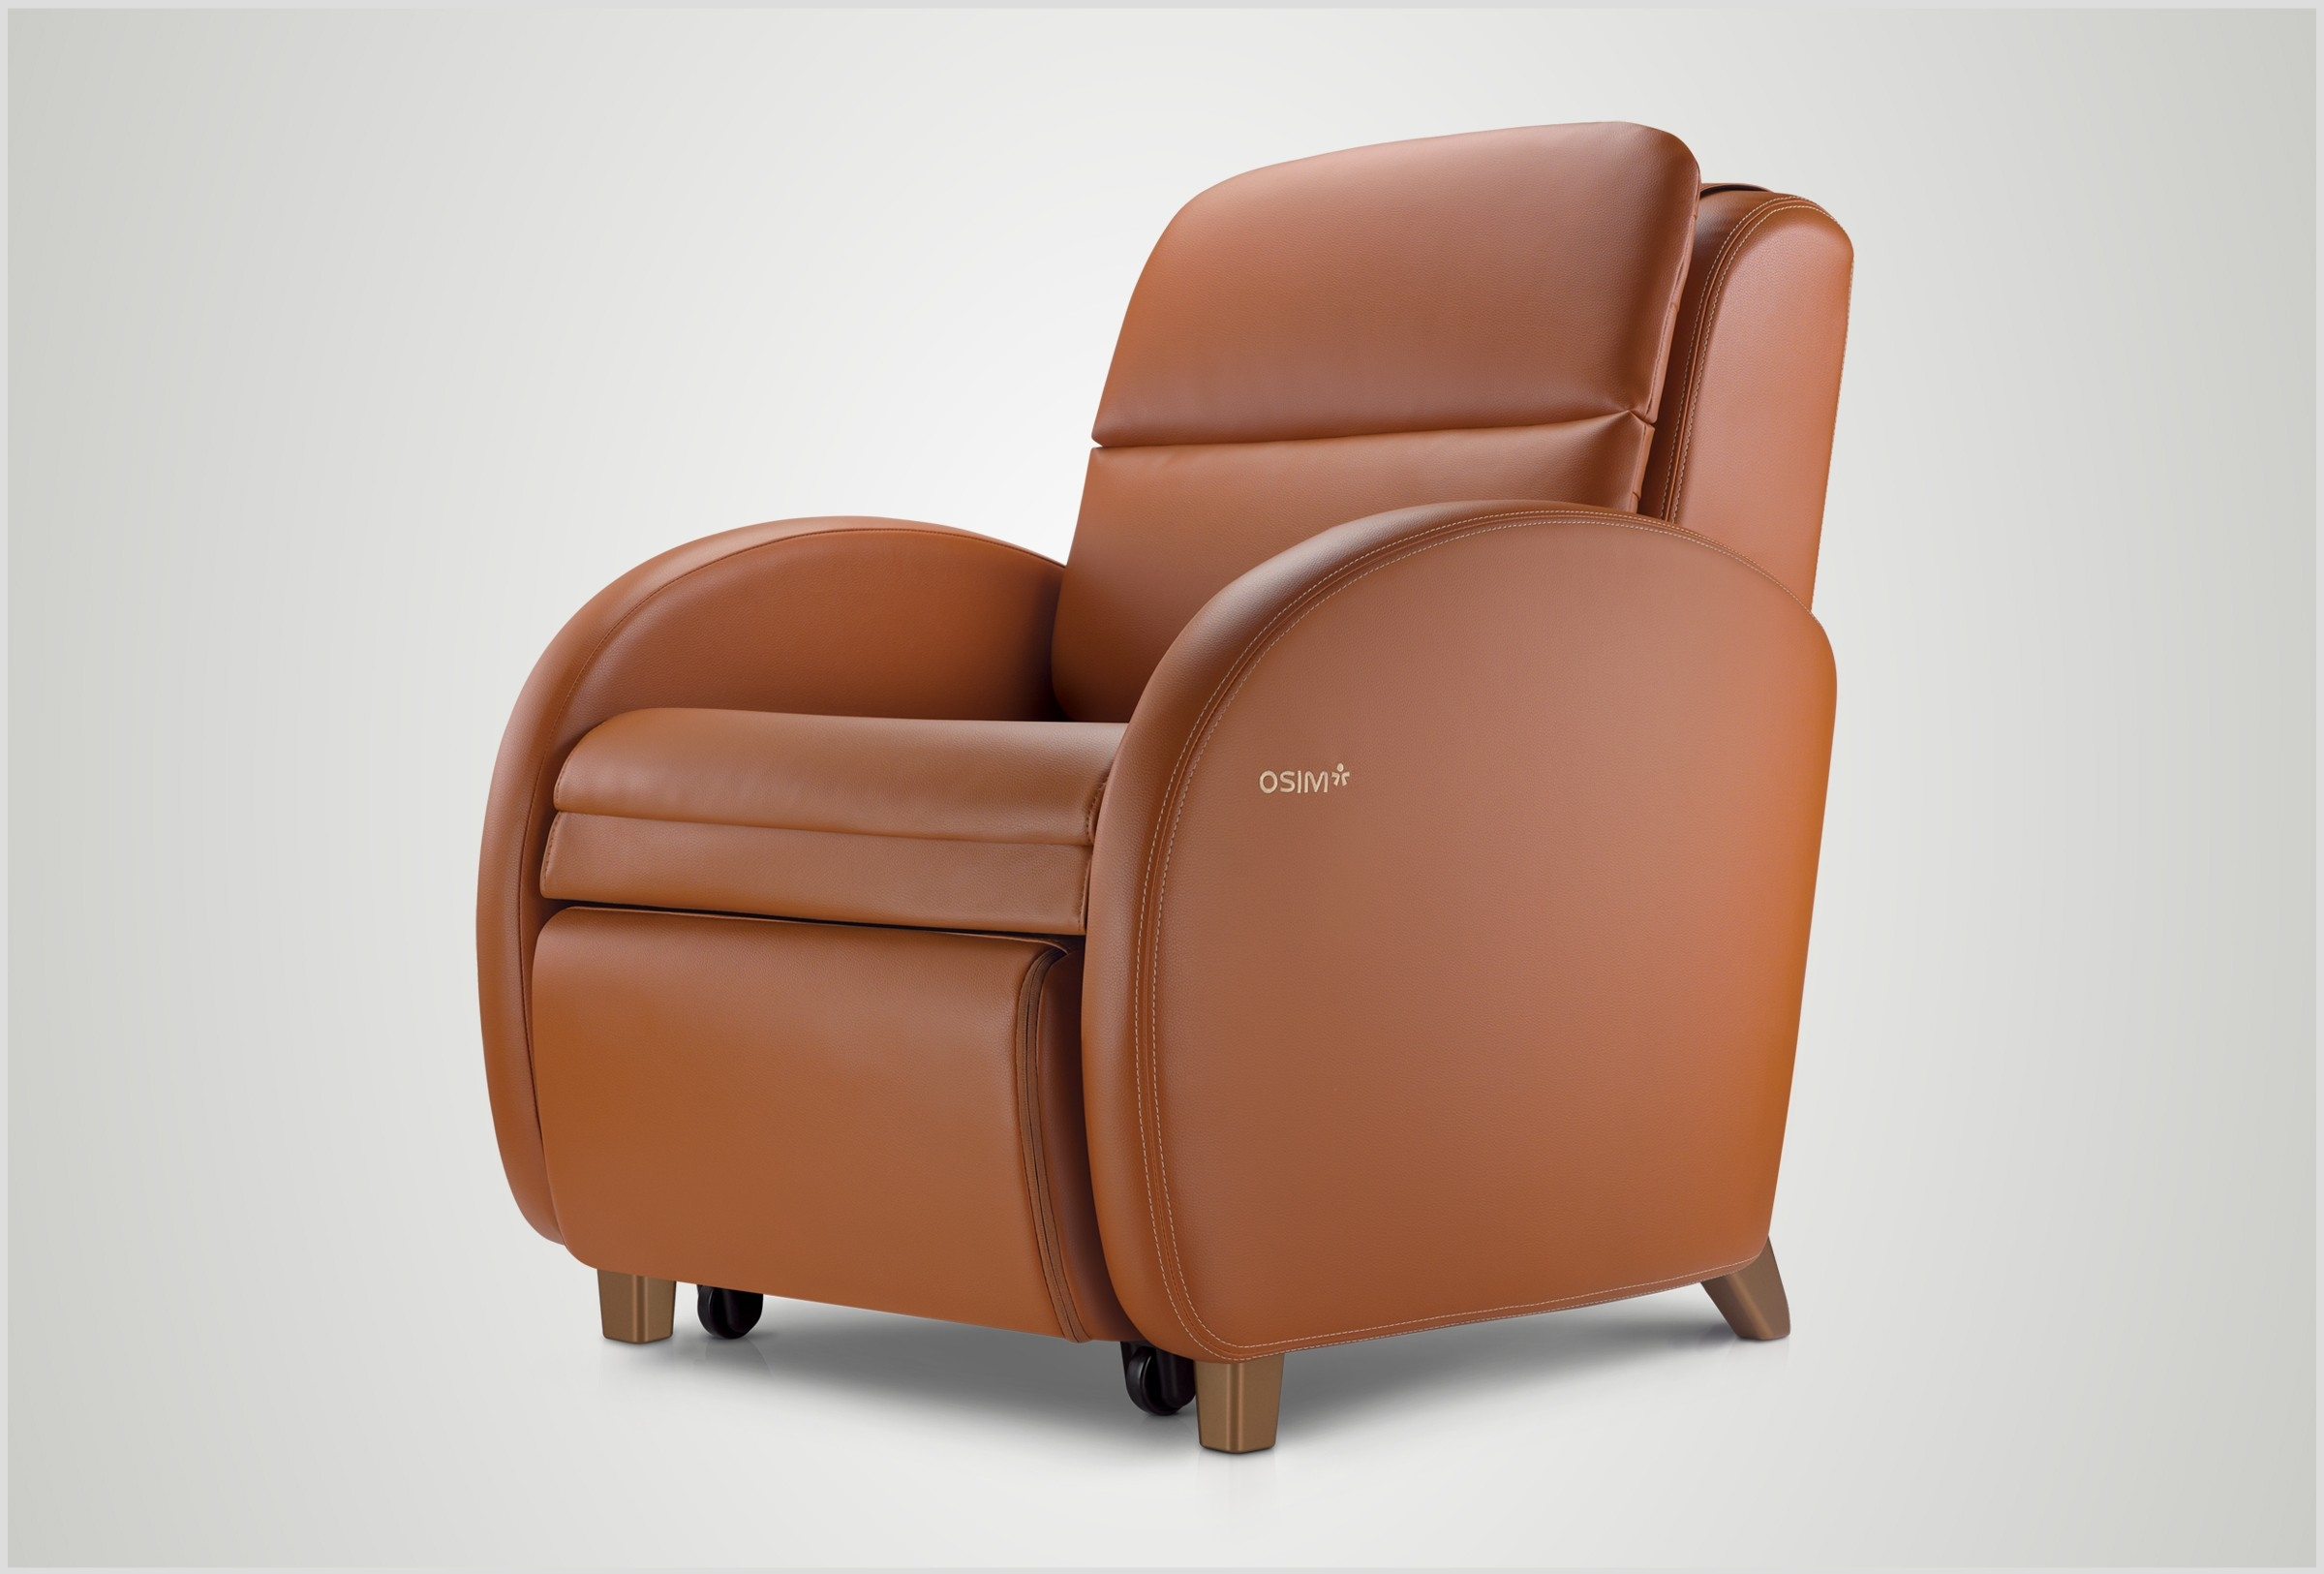 Osim Webshop Osim Udiva Classic Massage Sofa Throughout Foot Massage Sofa Chairs (Image 15 of 15)